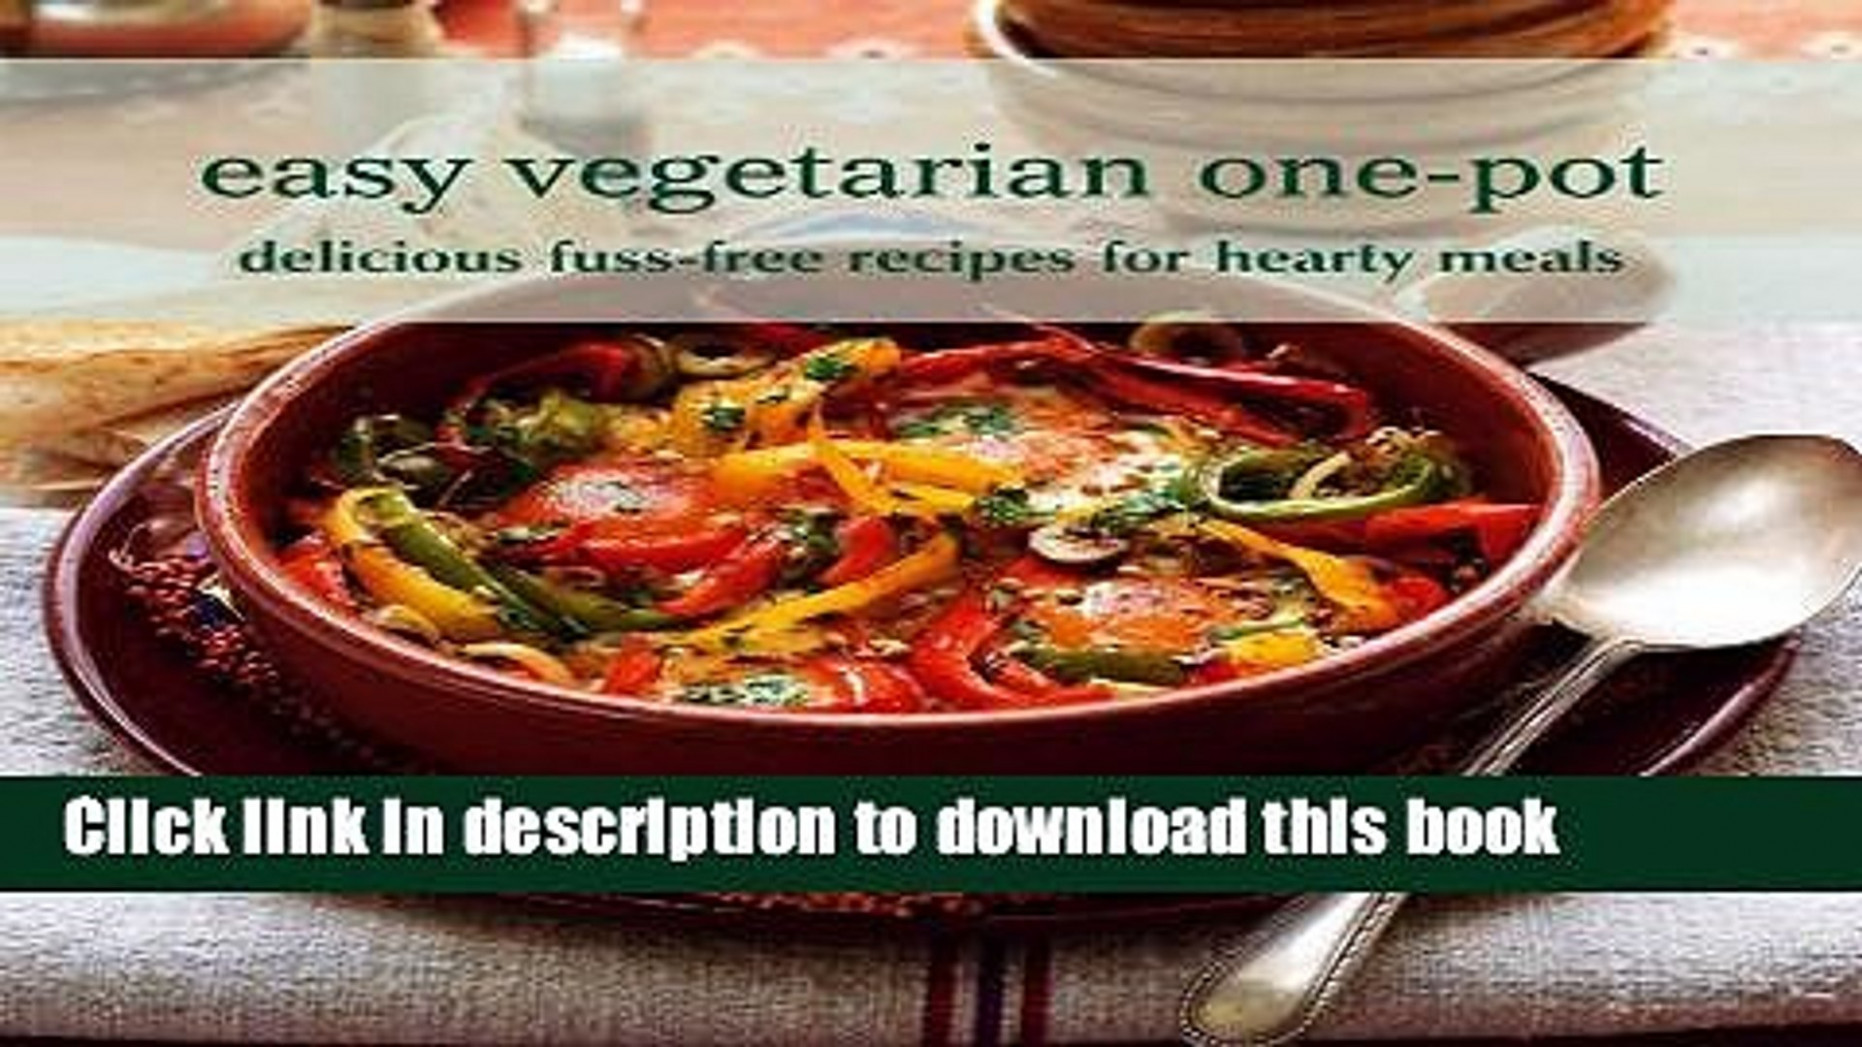 Books Easy Vegetarian One-Pot: Delicious Fuss-Free Recipes for Hearty  Meals